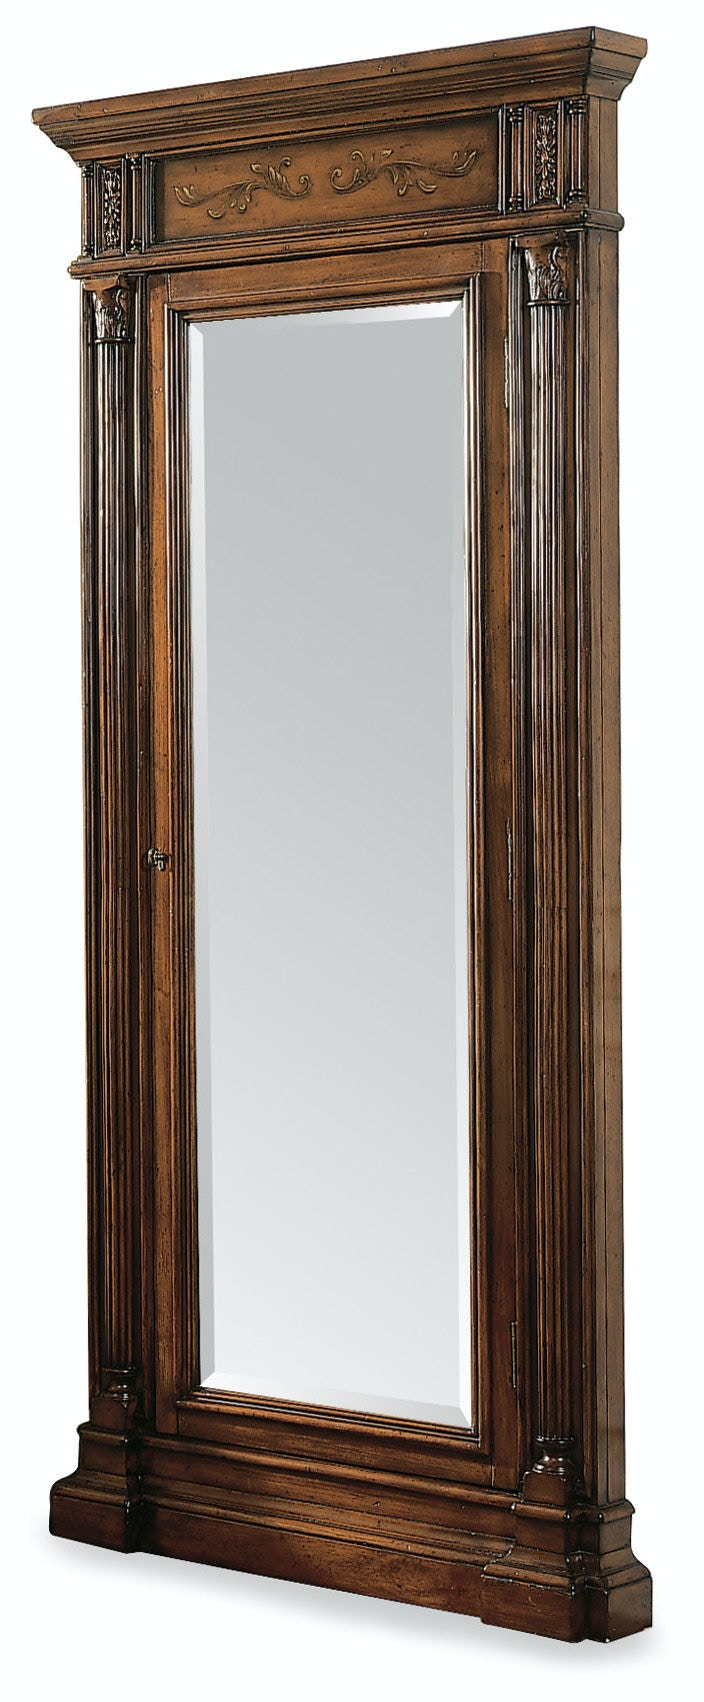 Hooker Furniture Accessories Floor Mirror wJewelry Armoire Storage